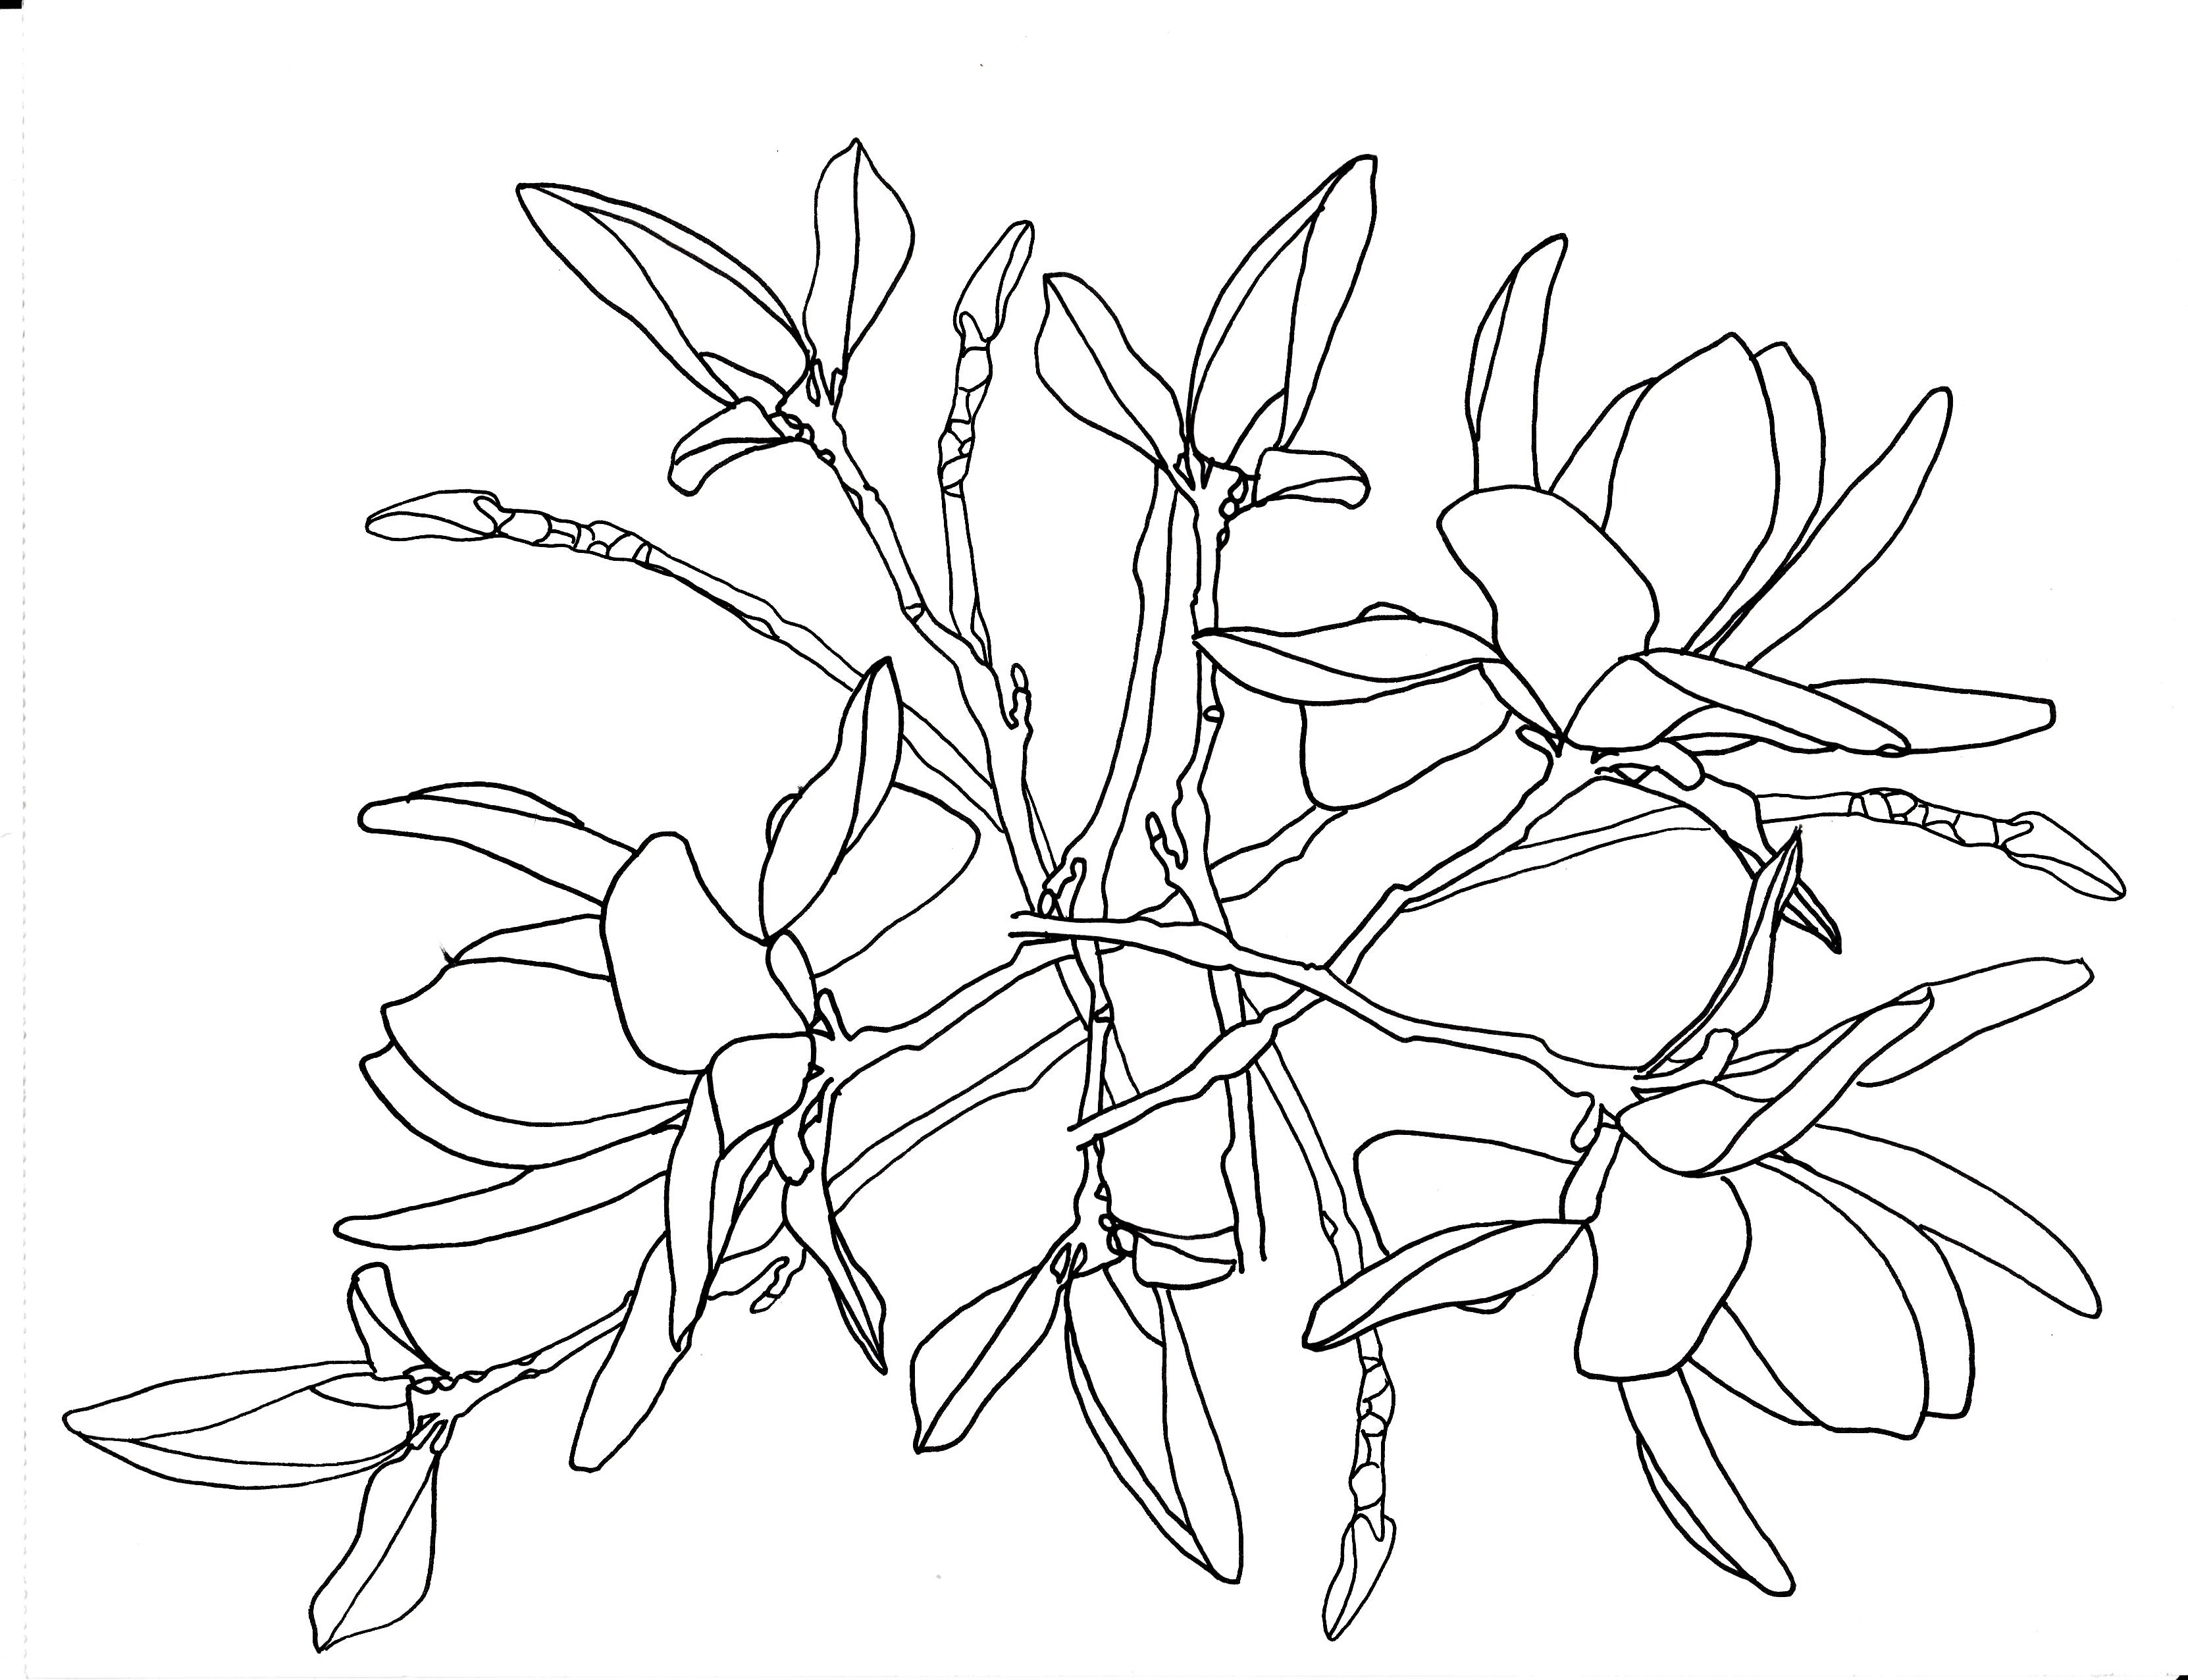 Coloring pictures of flowers and trees - Line Drawing Flowers Tulip Tree Blooms